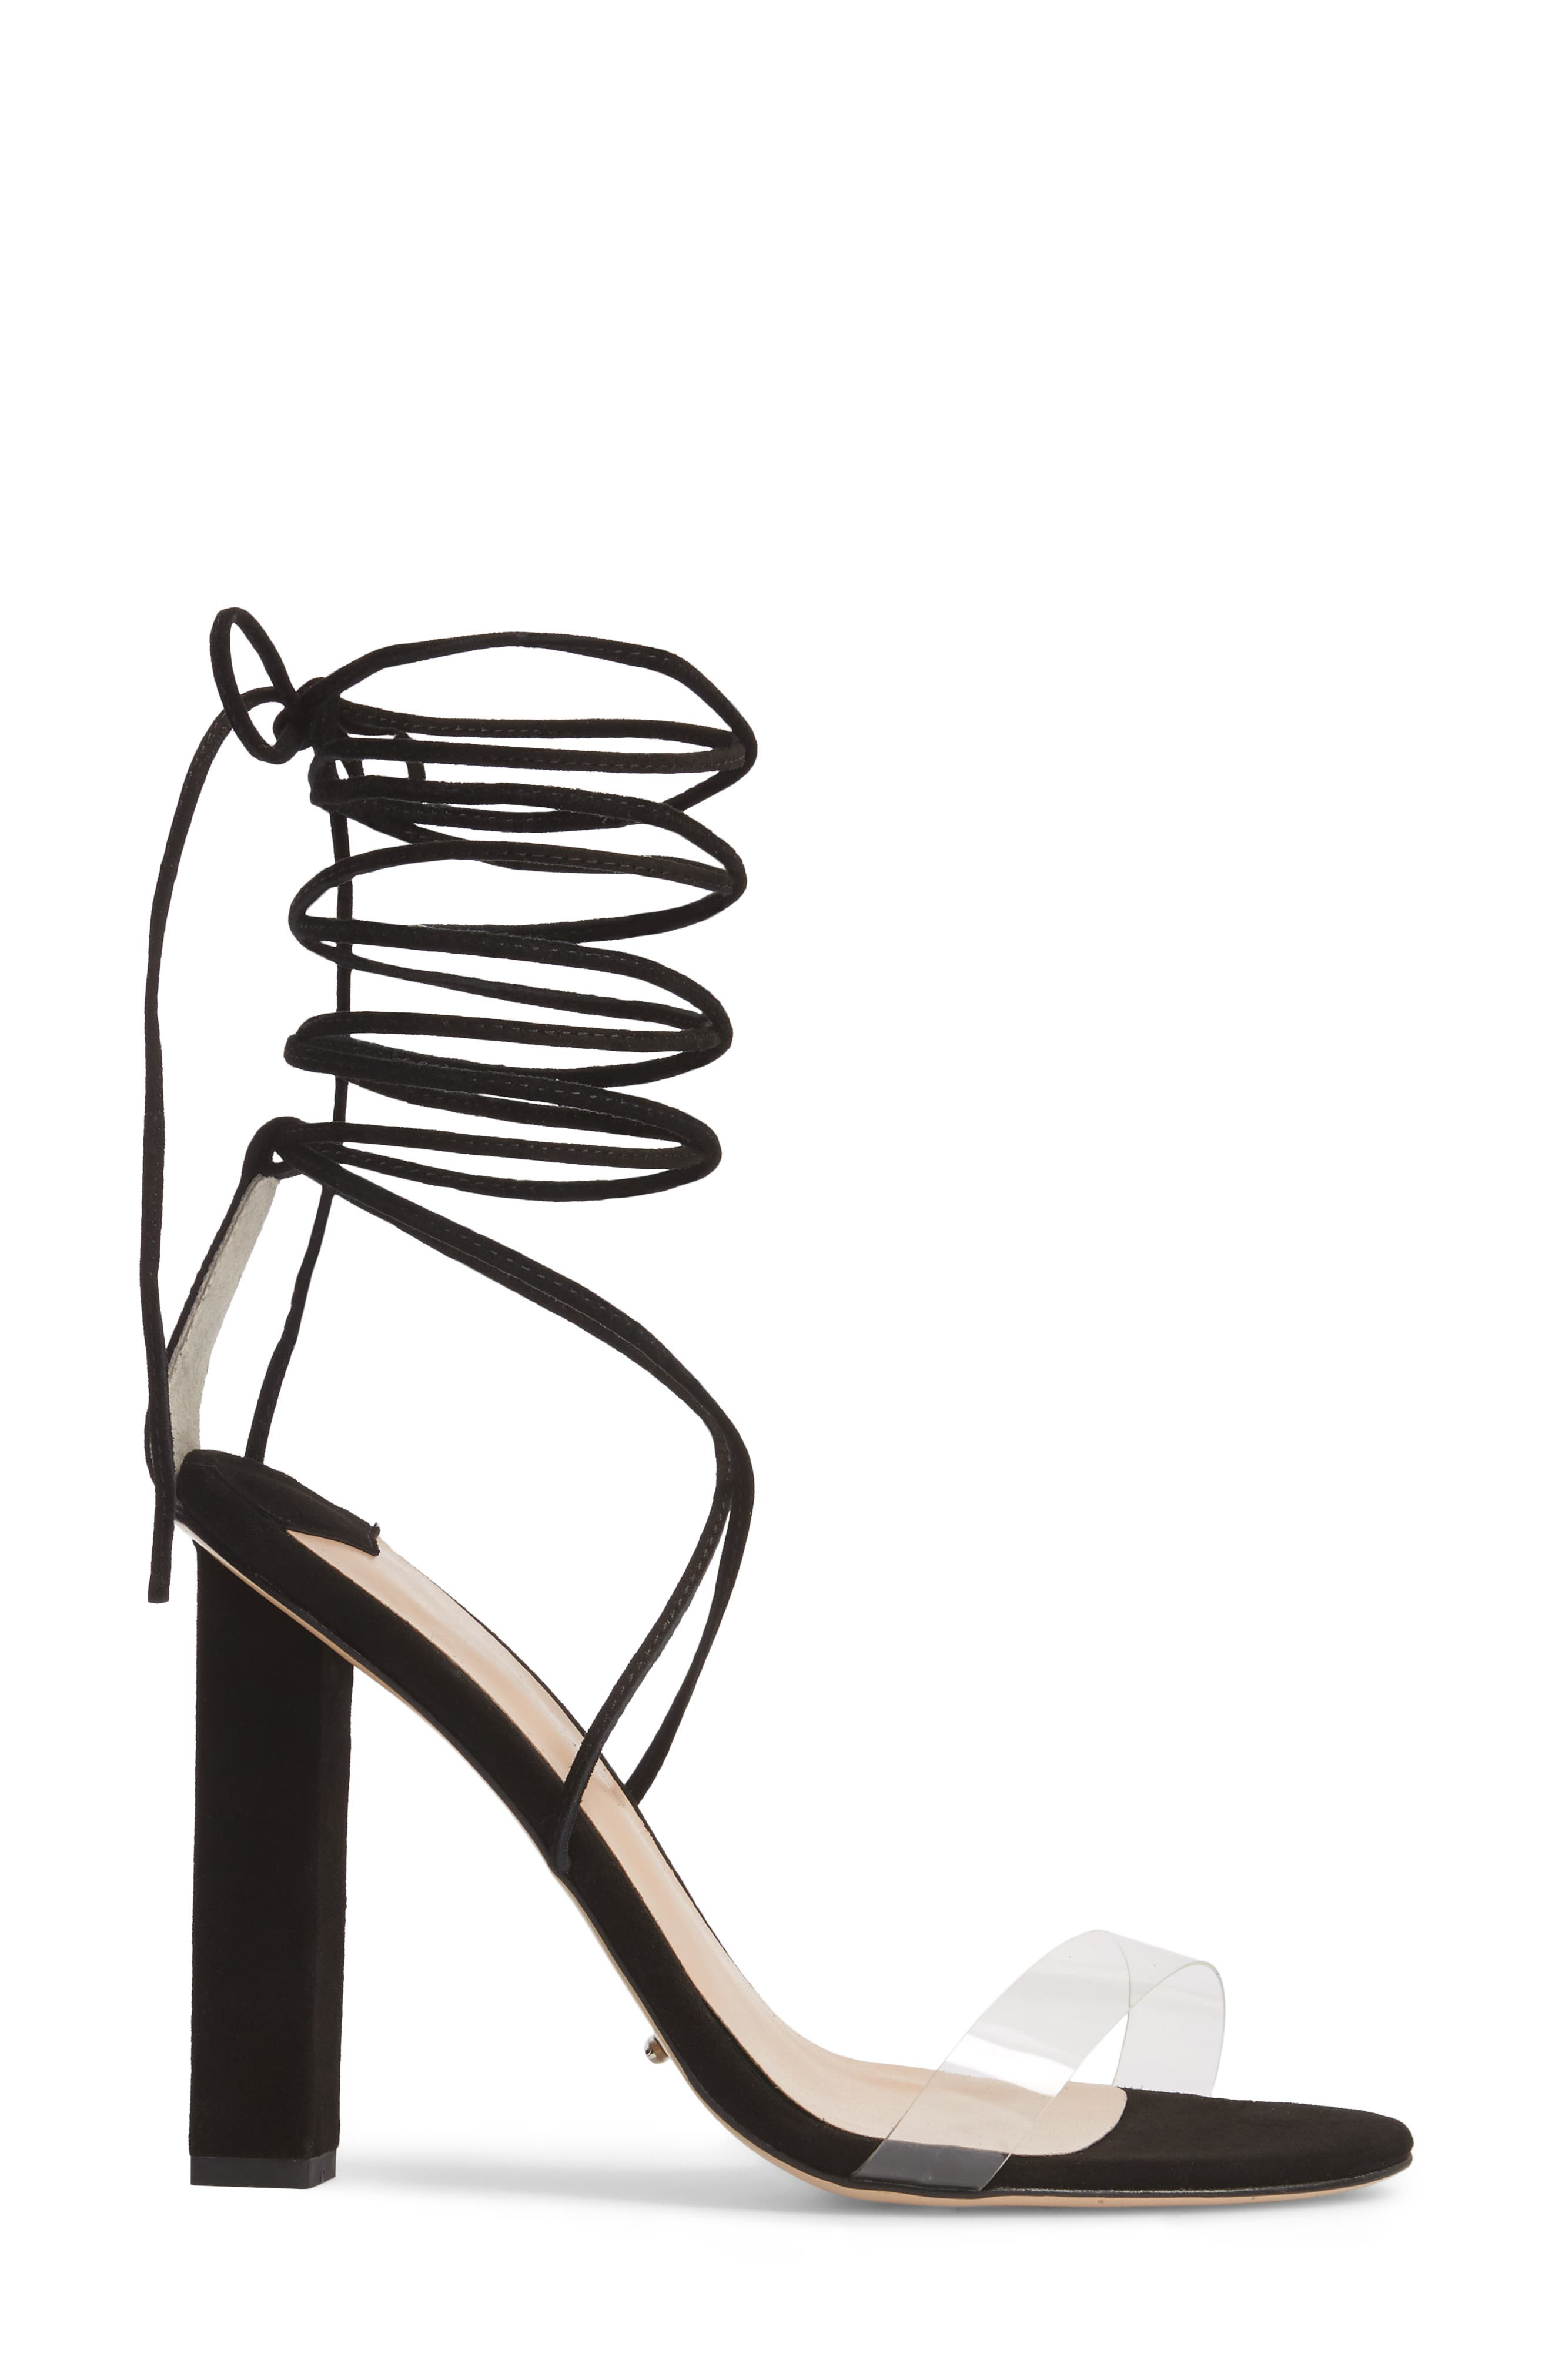 Kendall Ankle Tie Sandal,                             Alternate thumbnail 3, color,                             Clear/ Black Suede